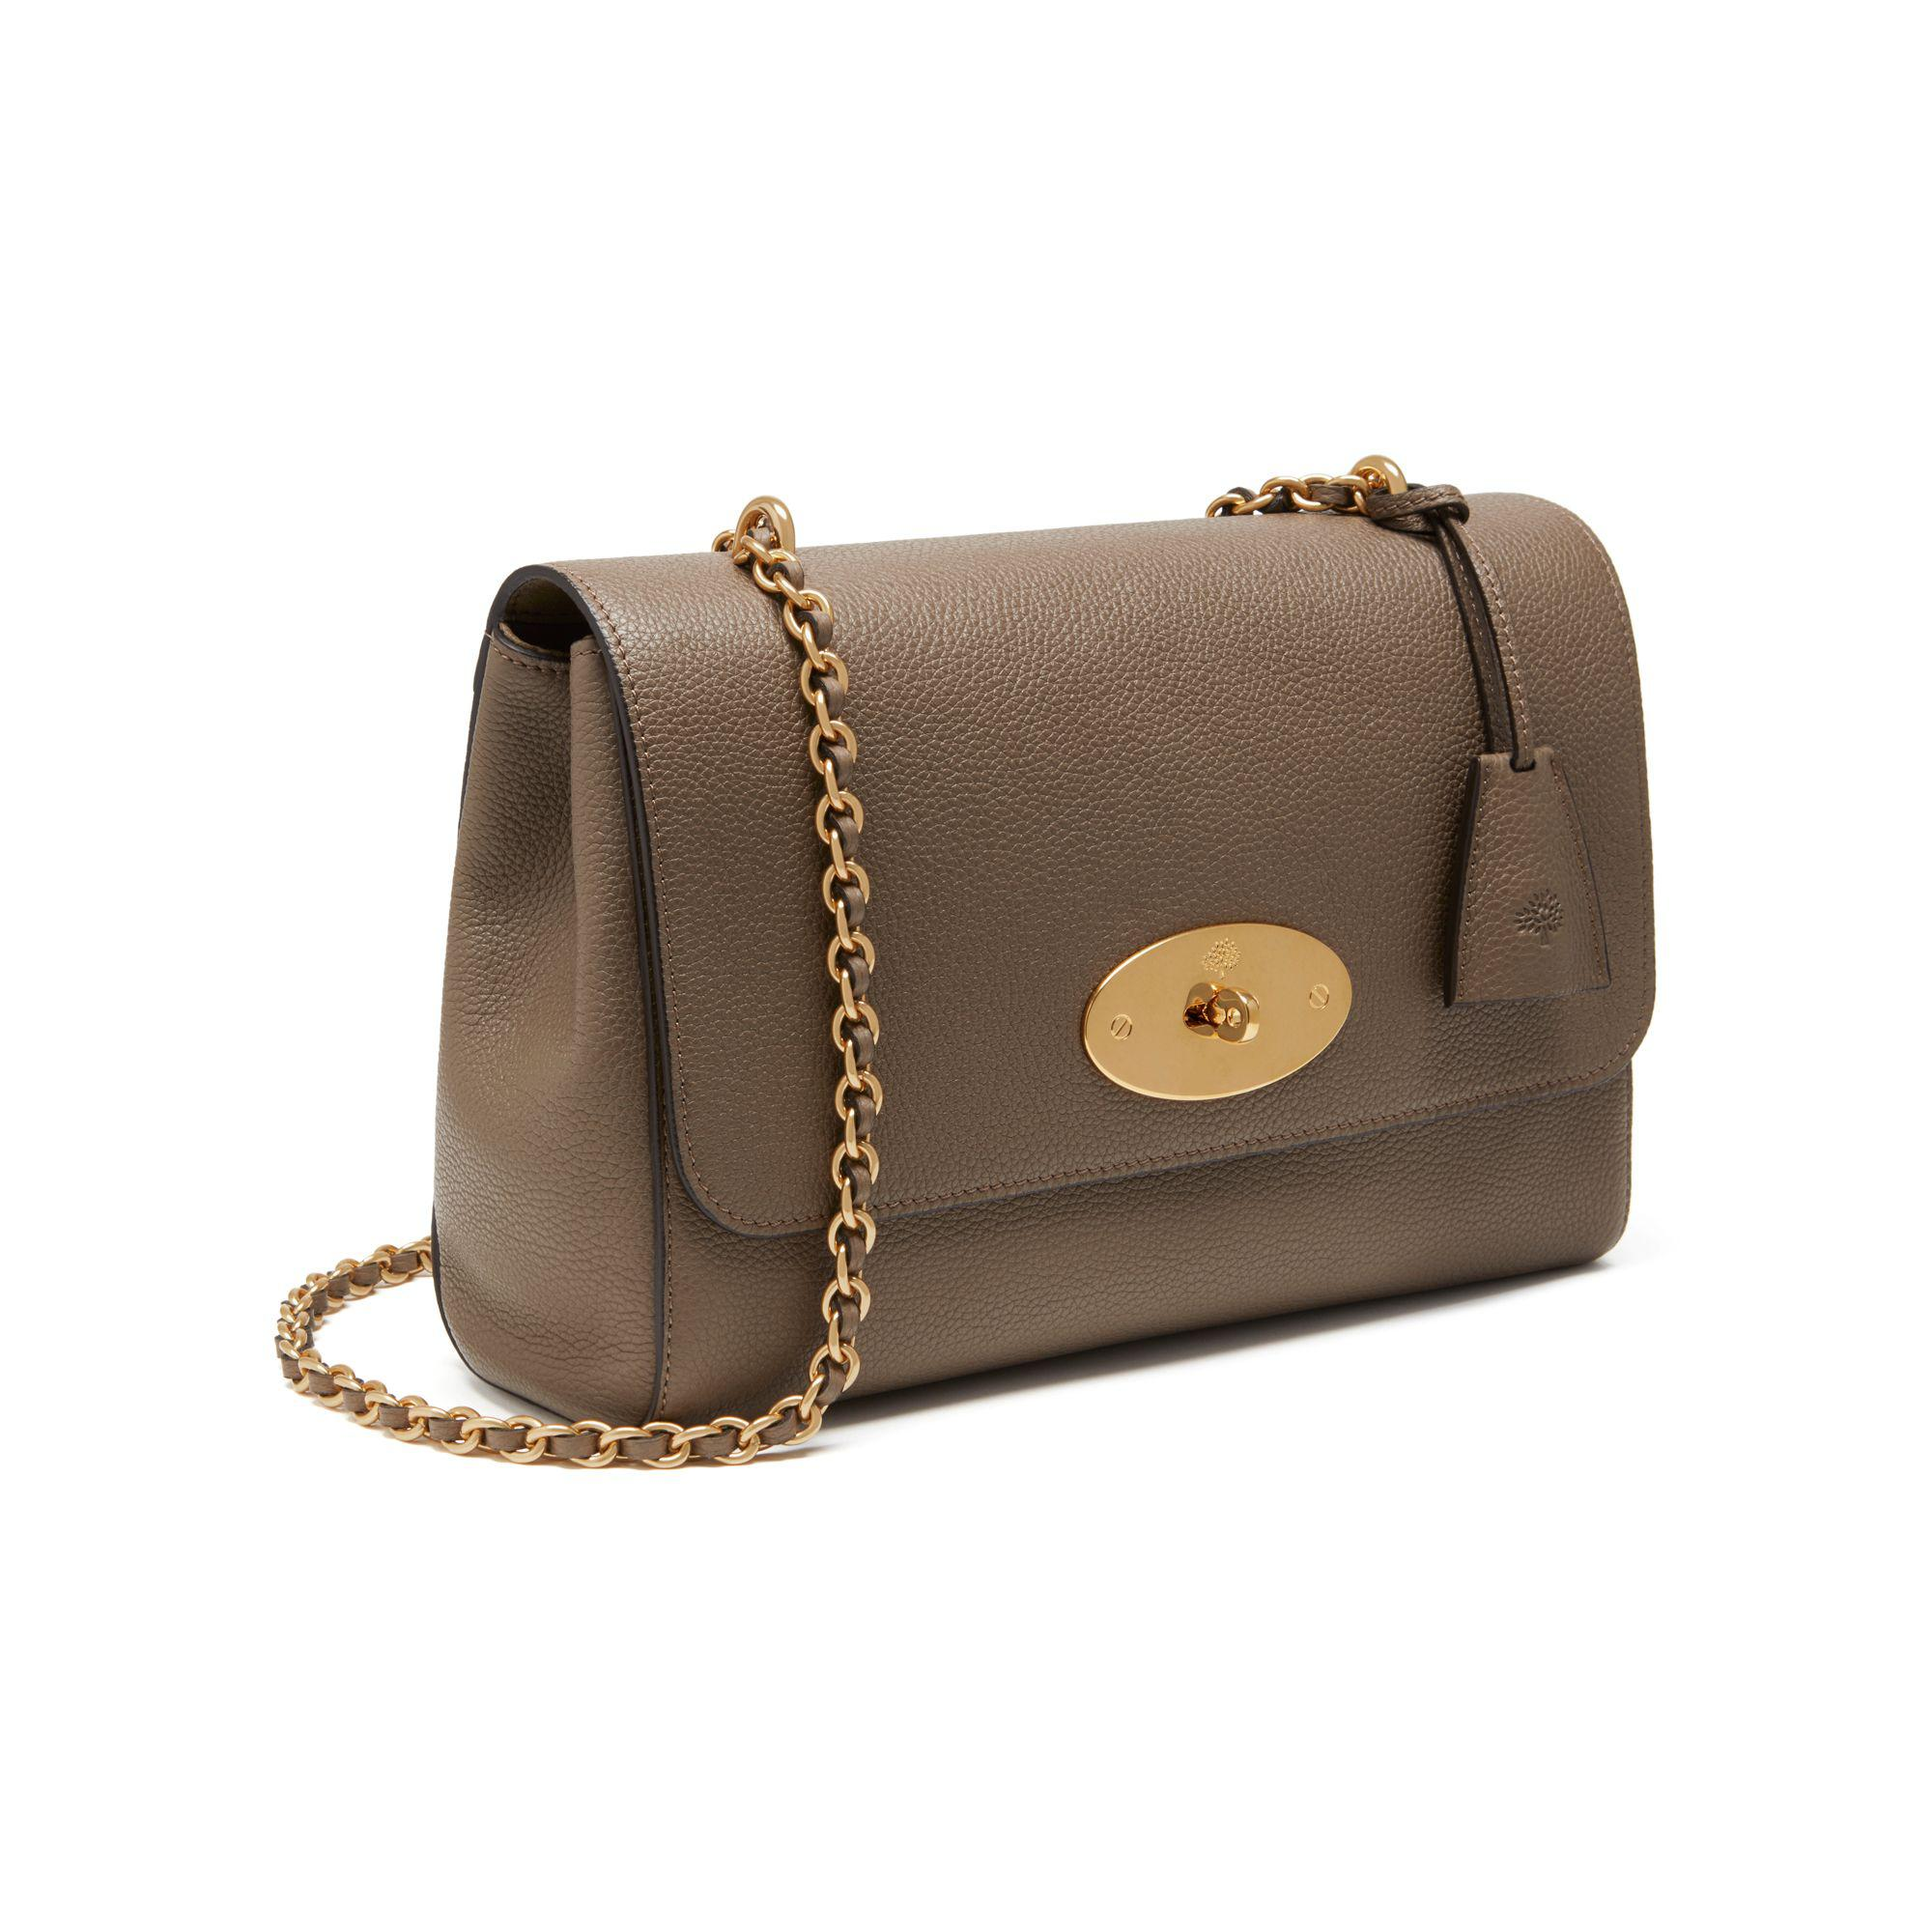 89cfa0d54c ... leather shoulder bag clay for women on sale 56ca1 c32ee spain mulberry  multicolor medium lily lyst. view fullscreen 2a5cd a7c3b